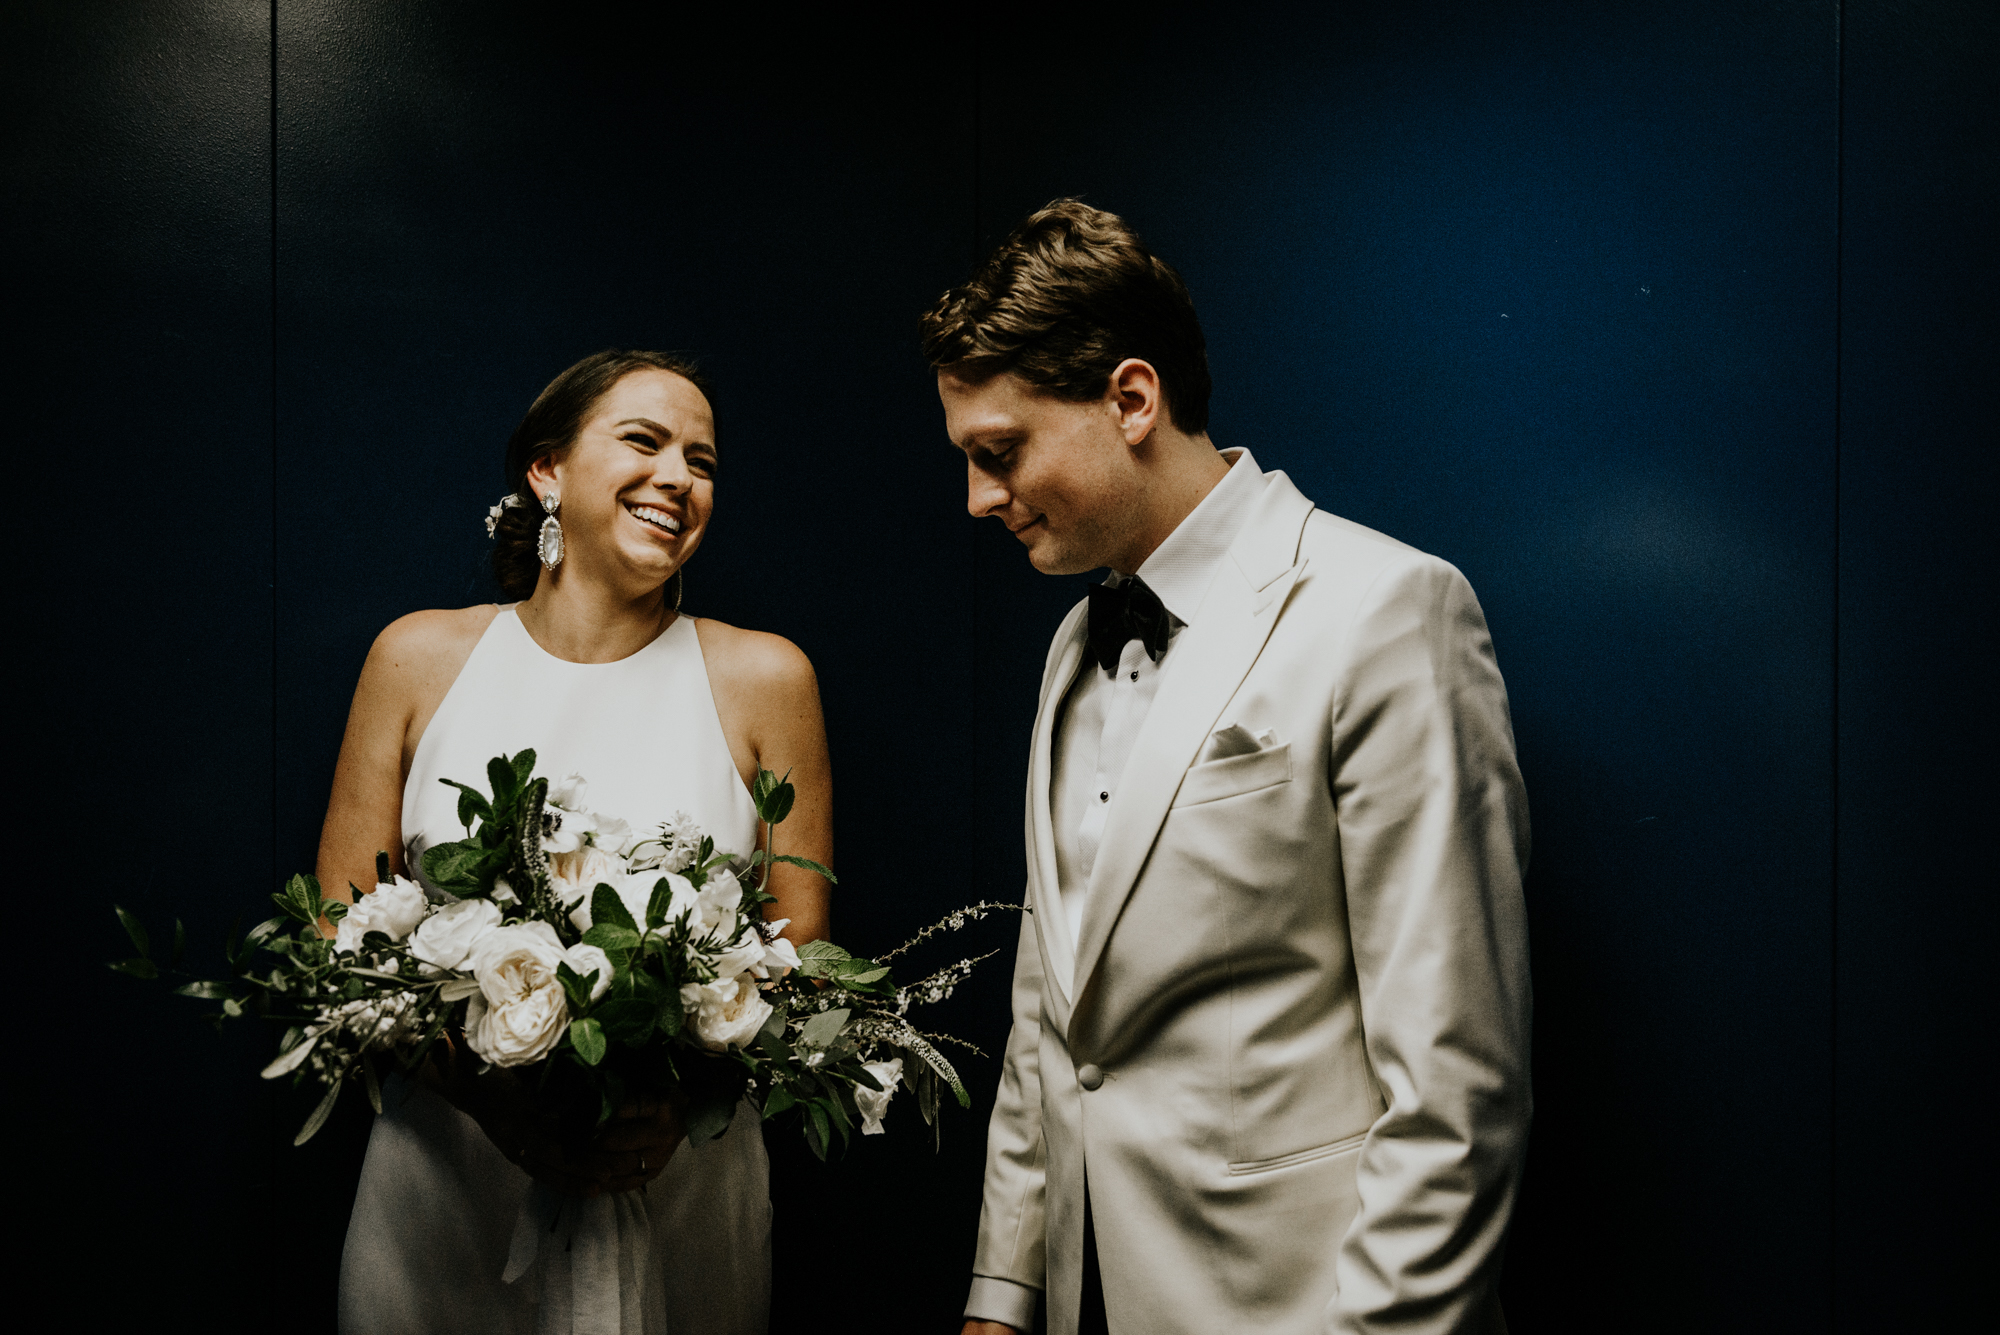 Happy Intimate Wedding day Portraits at South Congress Hotel in Austin, Texas